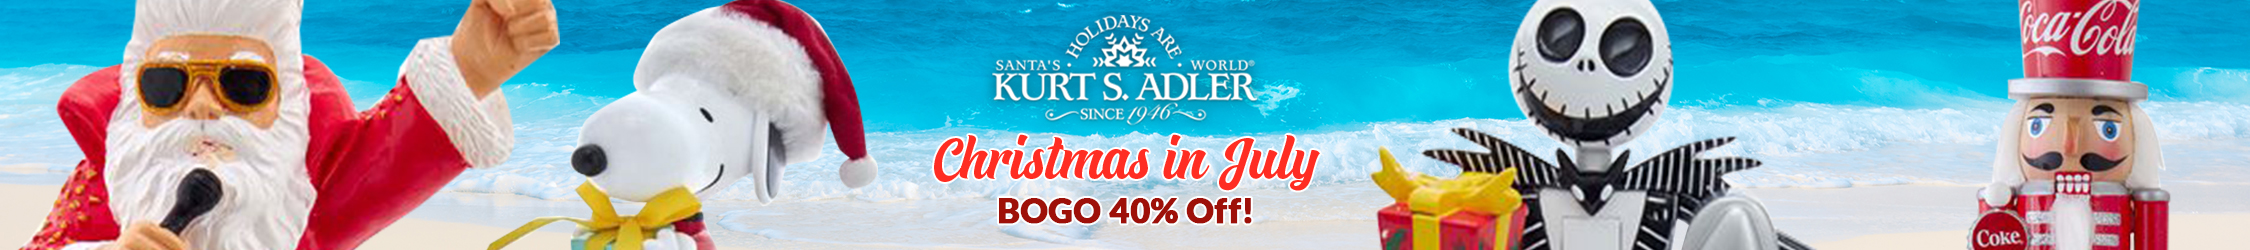 Christmas in July! BOGO 40% Off Kurt S Adler